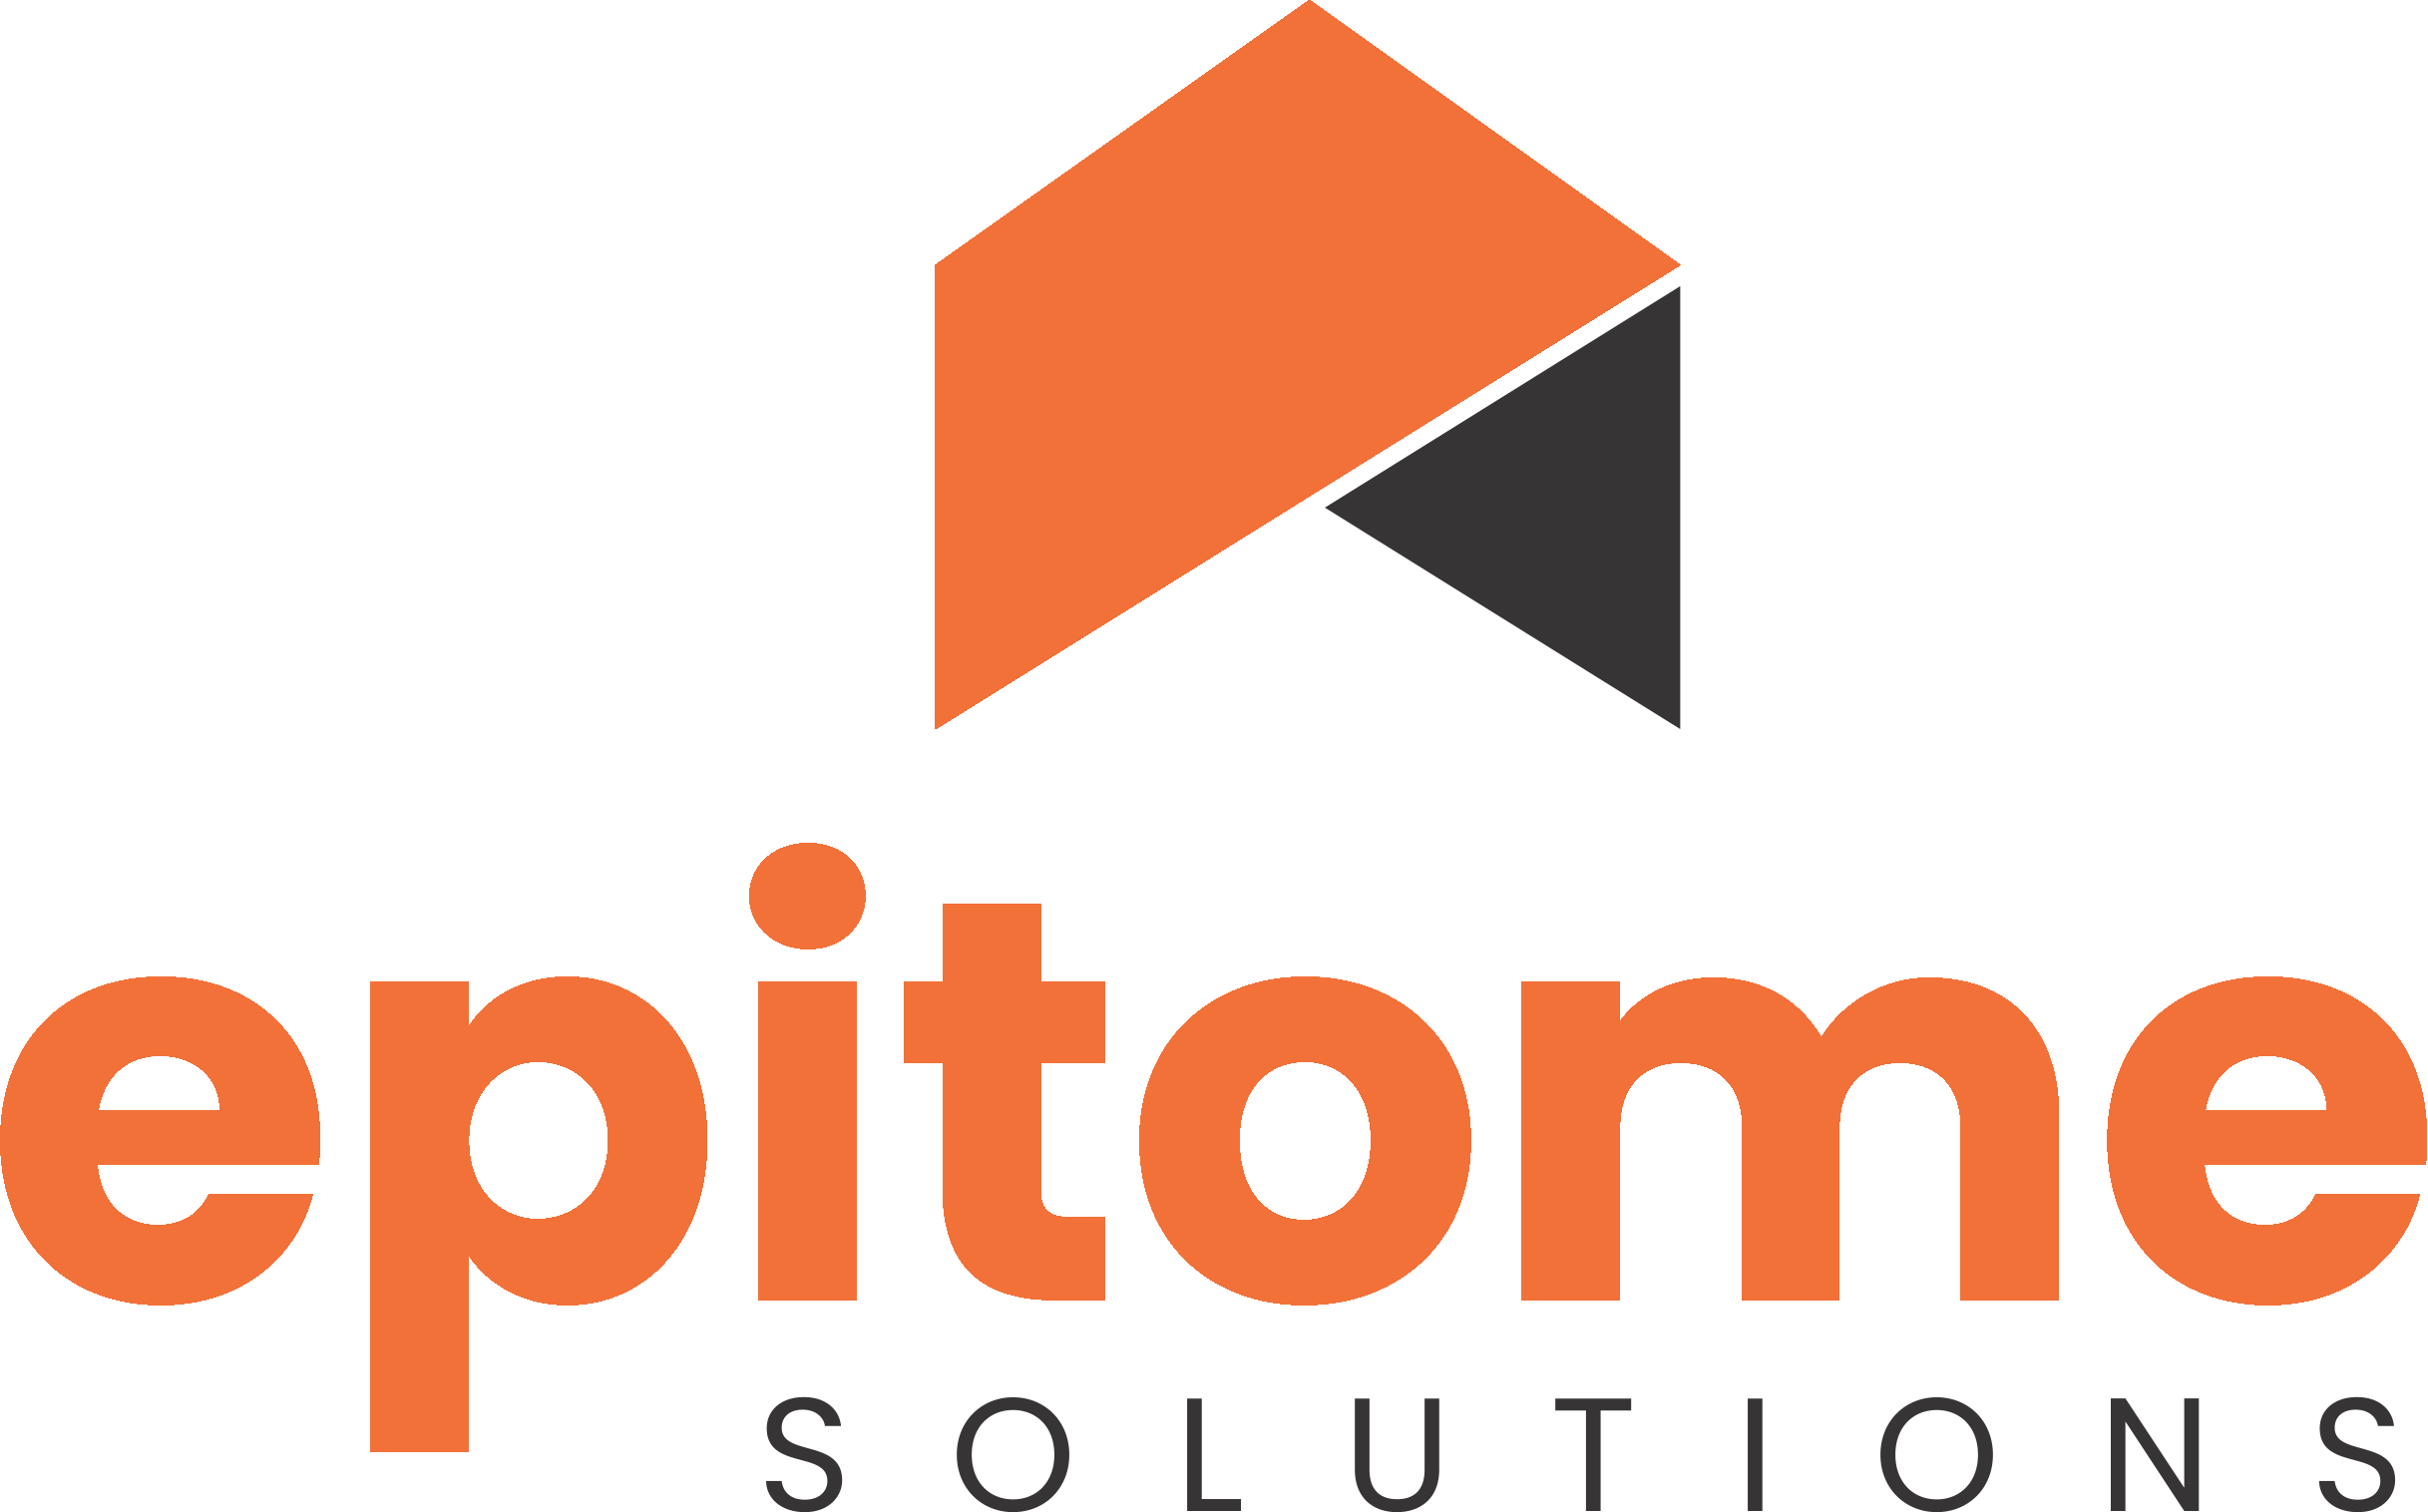 Epitome Solutions